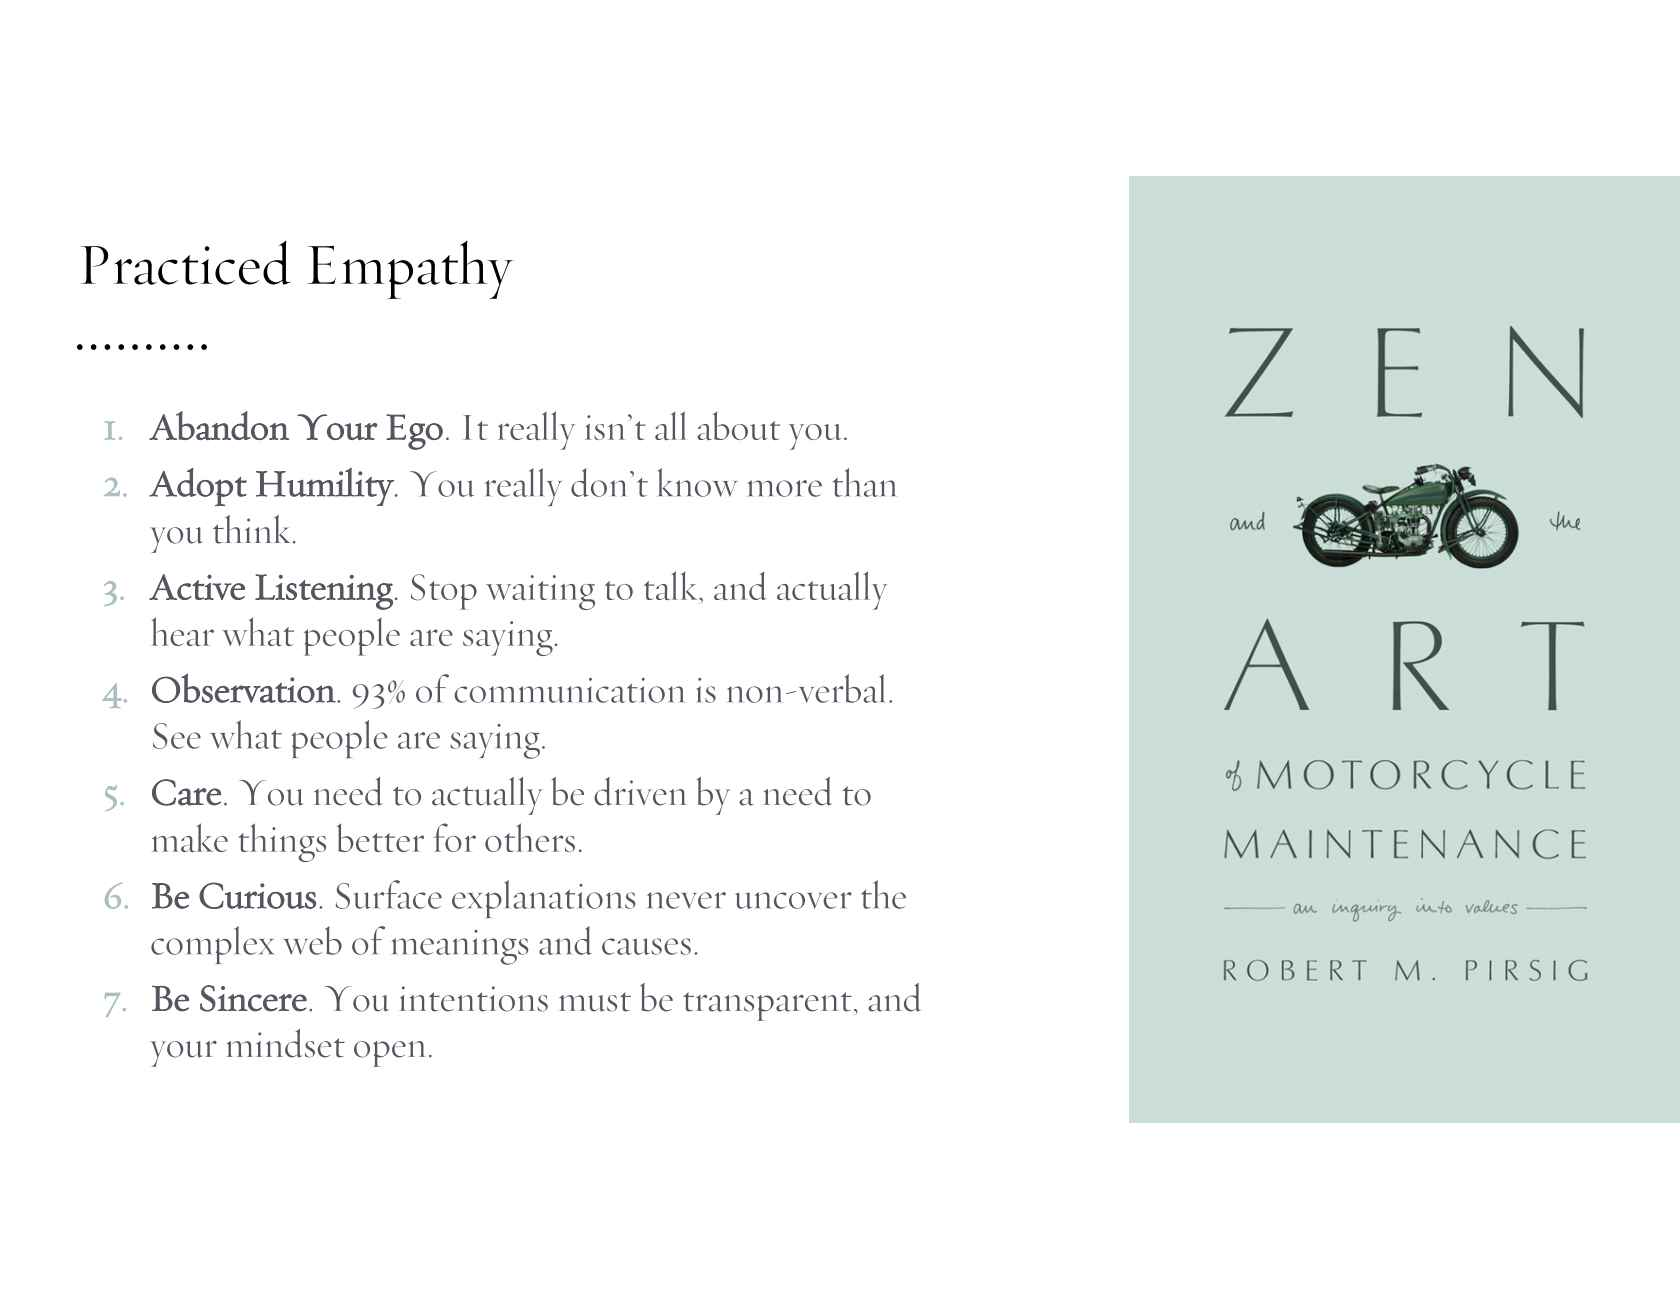 zen and the art of motorcycle maintenance mp3 download